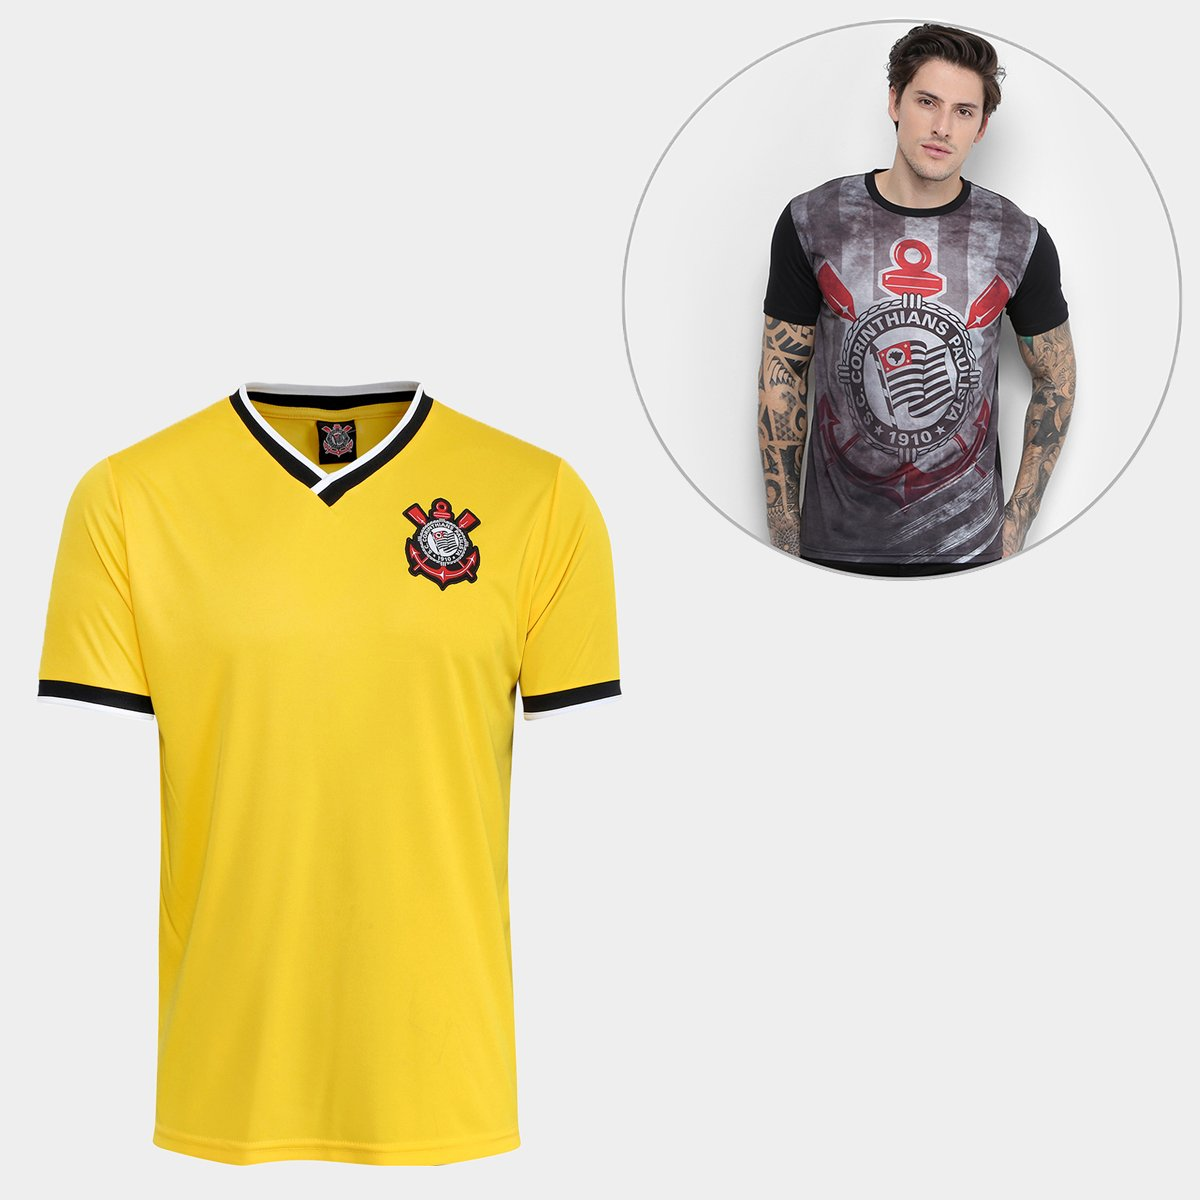 c2d01158b4df7 Kit Camisas 2014 + The Only Corinthians Masculina - Compre Agora ...